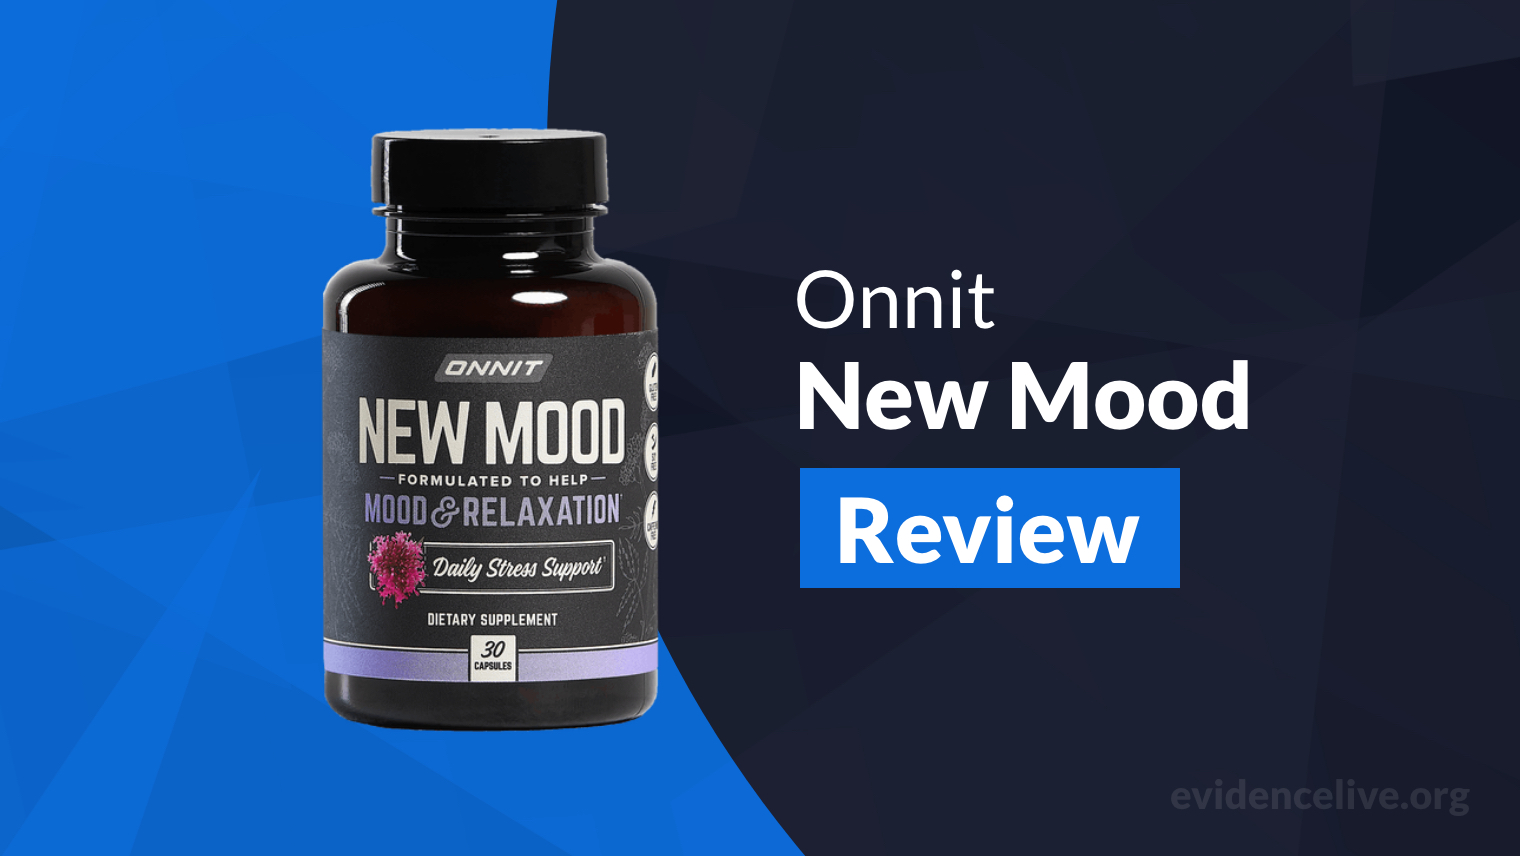 Onnit New Mood Review: Does It Really Work?